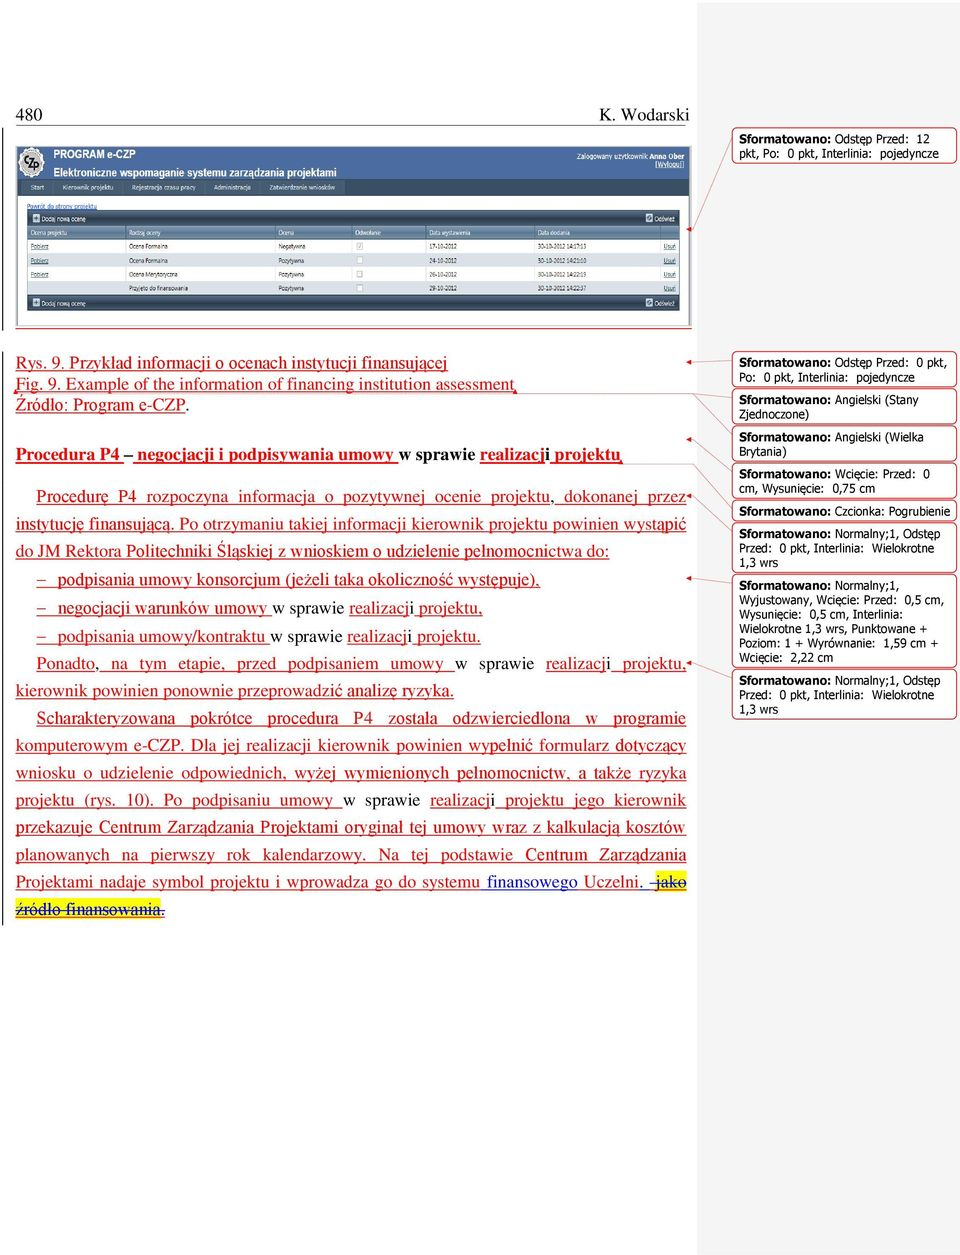 Example of the information of financing institution assessment Procedura P4 negocjacji i podpisywania umowy w sprawie realizacji projektu Procedurę P4 rozpoczyna informacja o pozytywnej ocenie